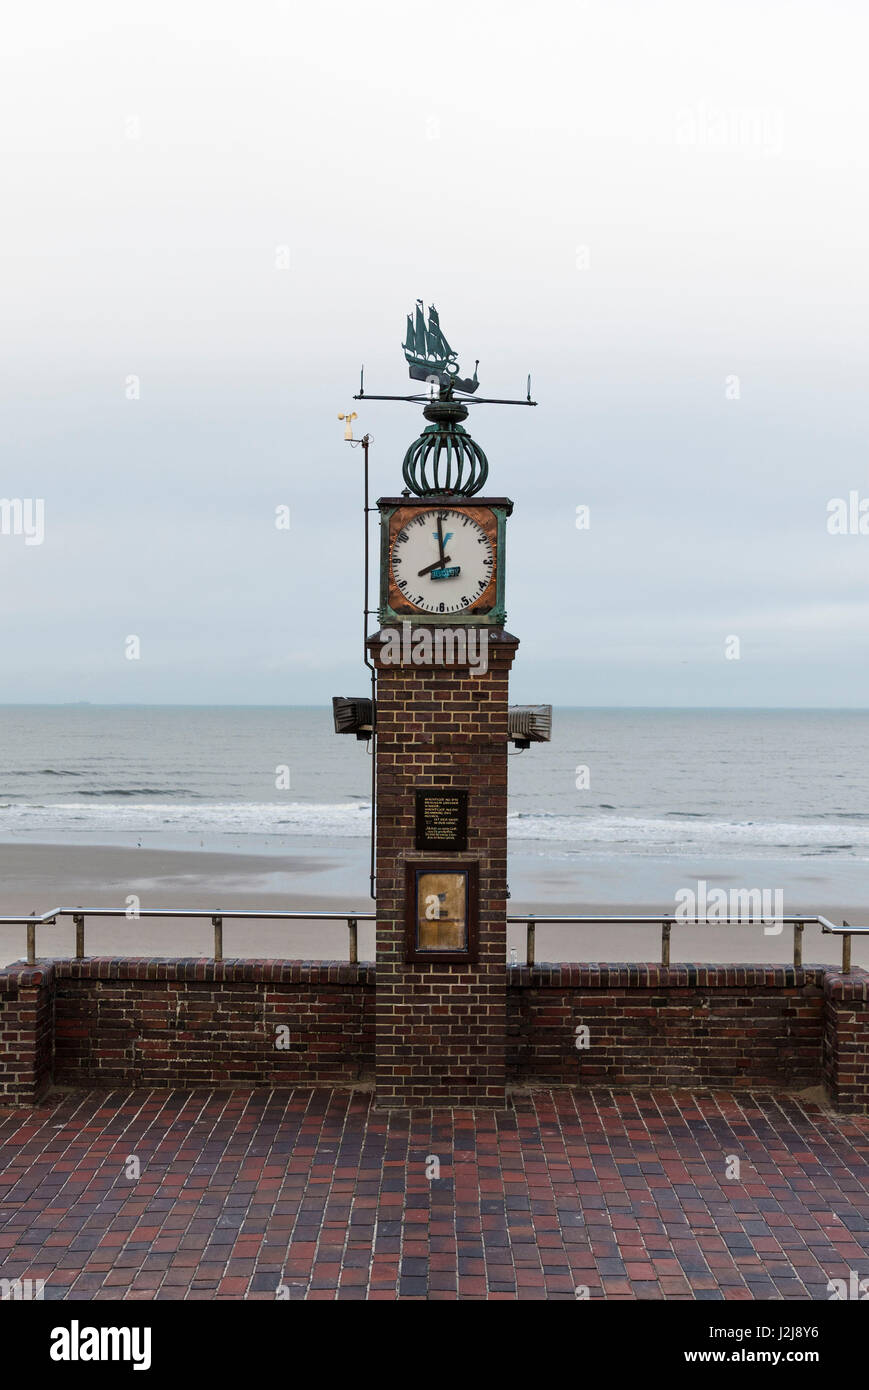 view from the Cafe Pudding on the promenade and the beach at low tide, Wangerooge, winter, Lower Saxony, Germany Stock Photo